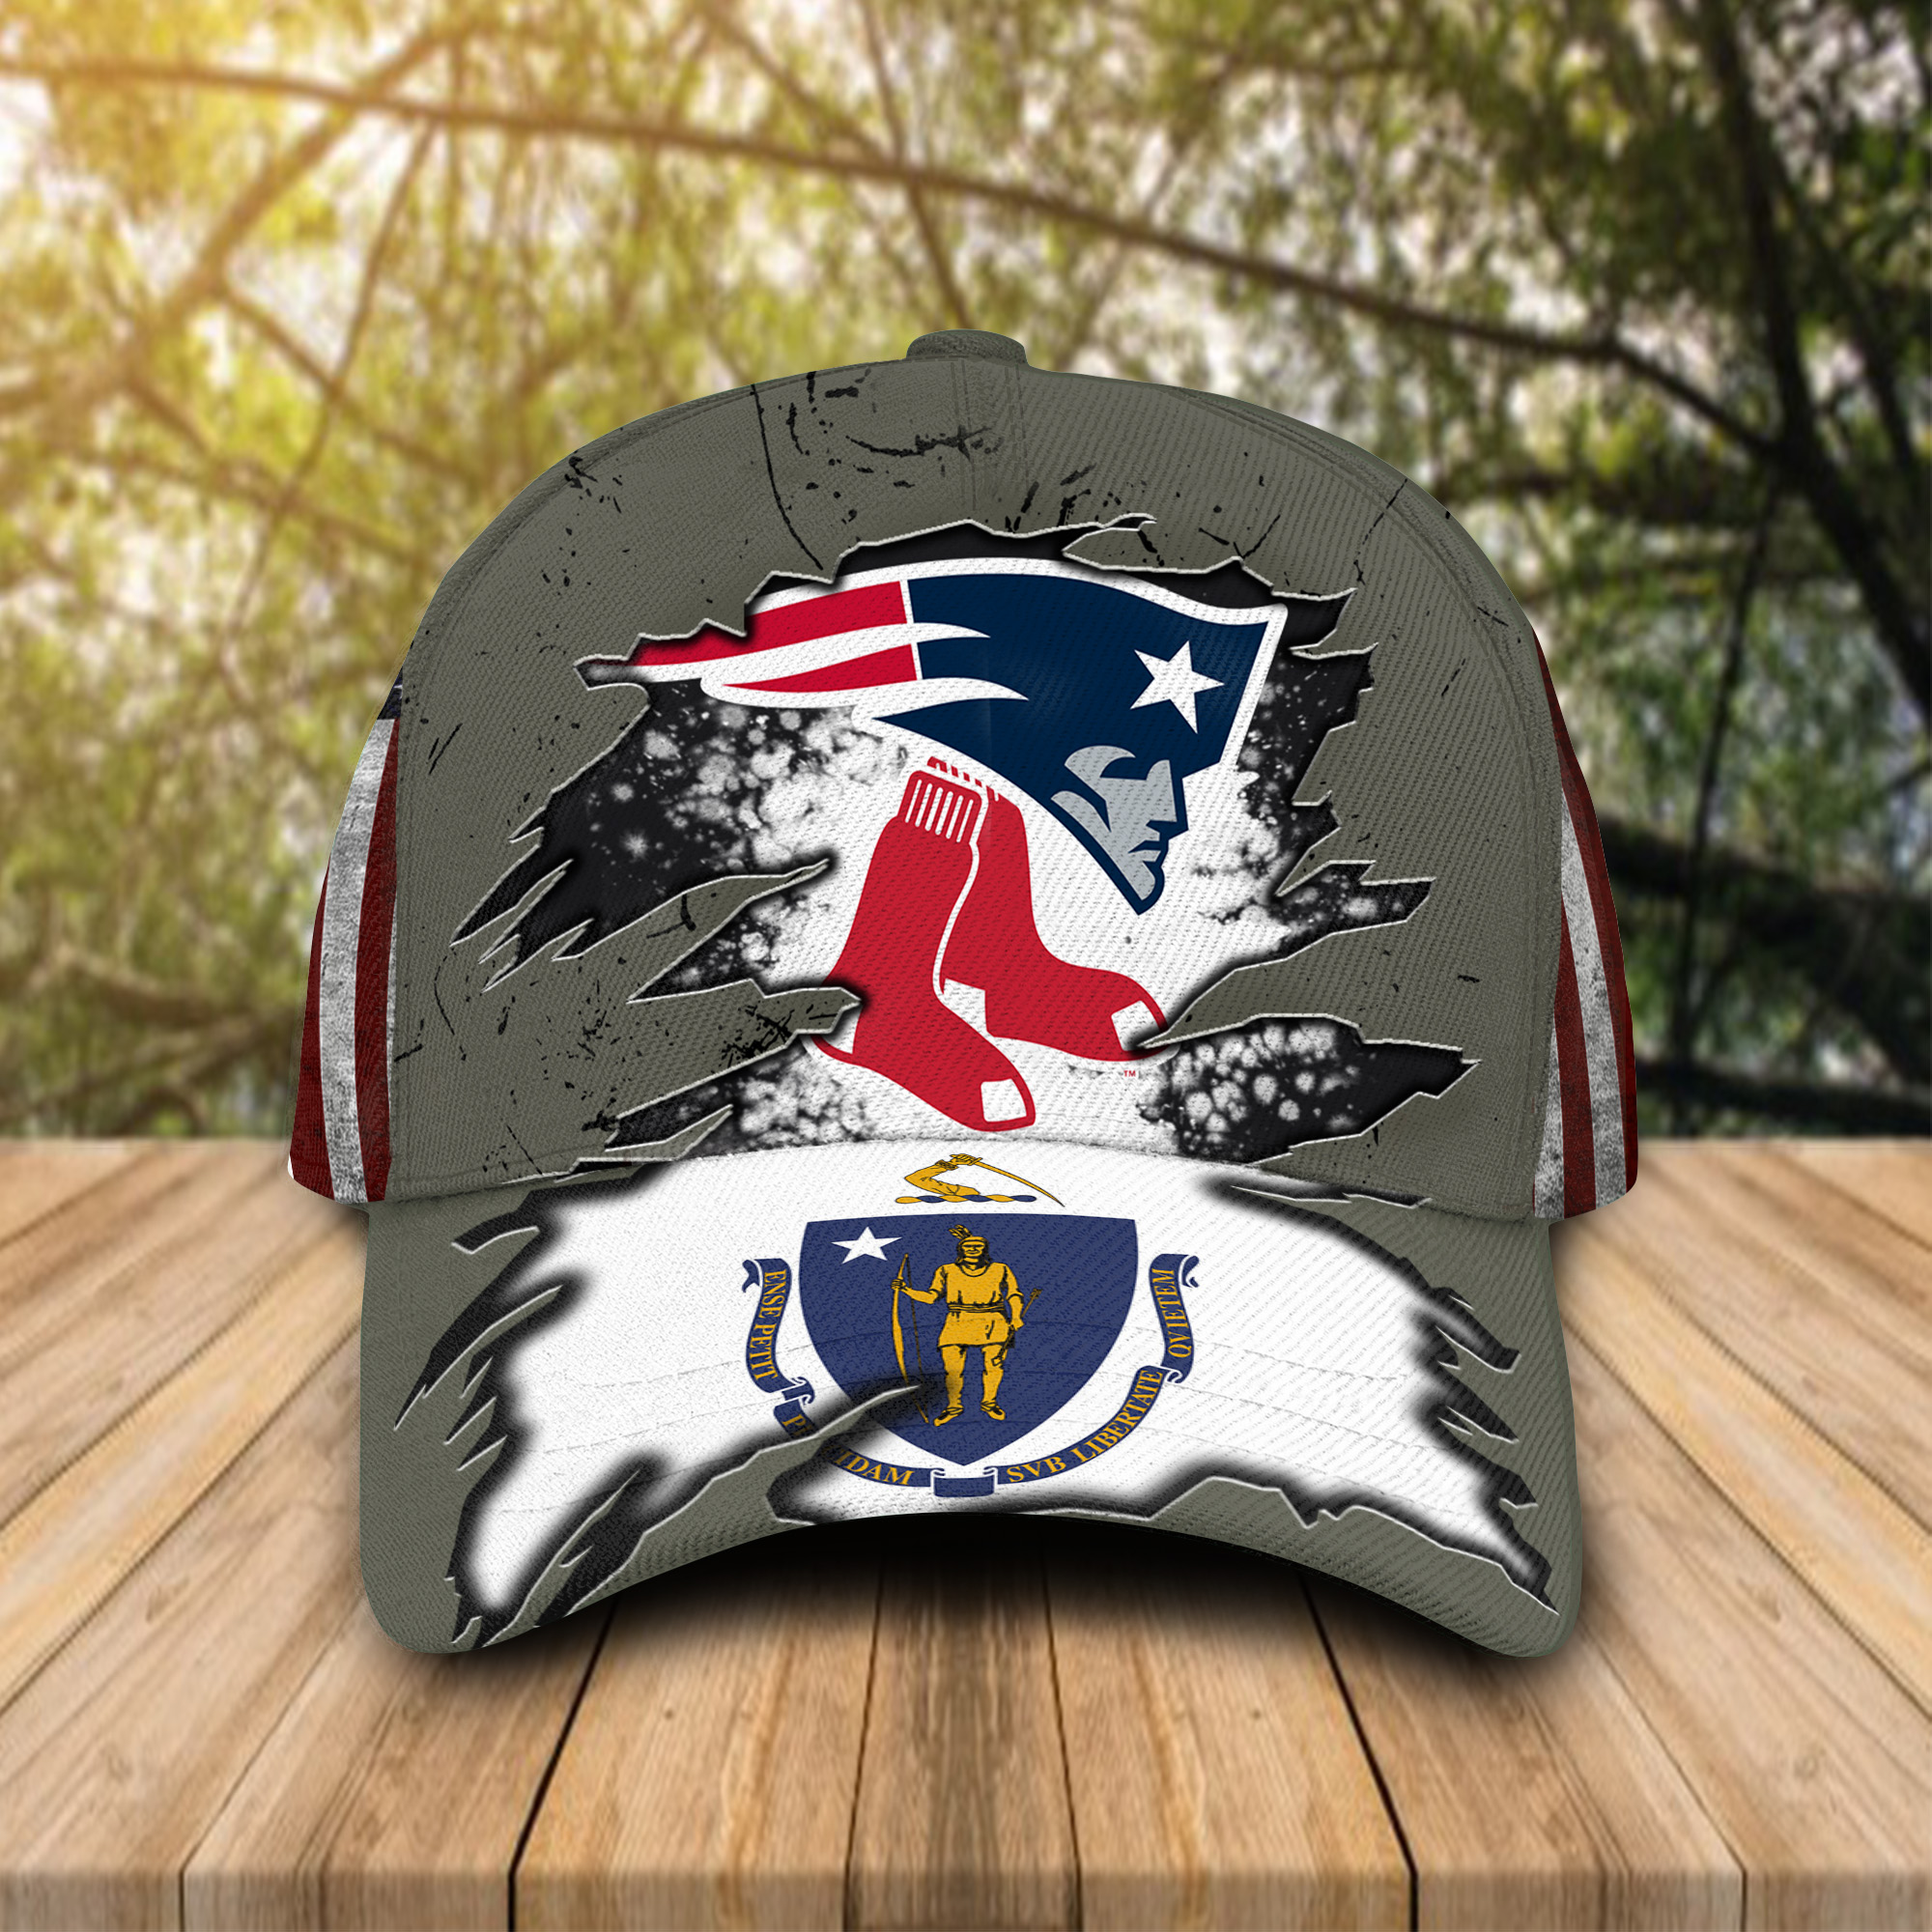 New England Patriots And Boston Red Sox Caps & Hats